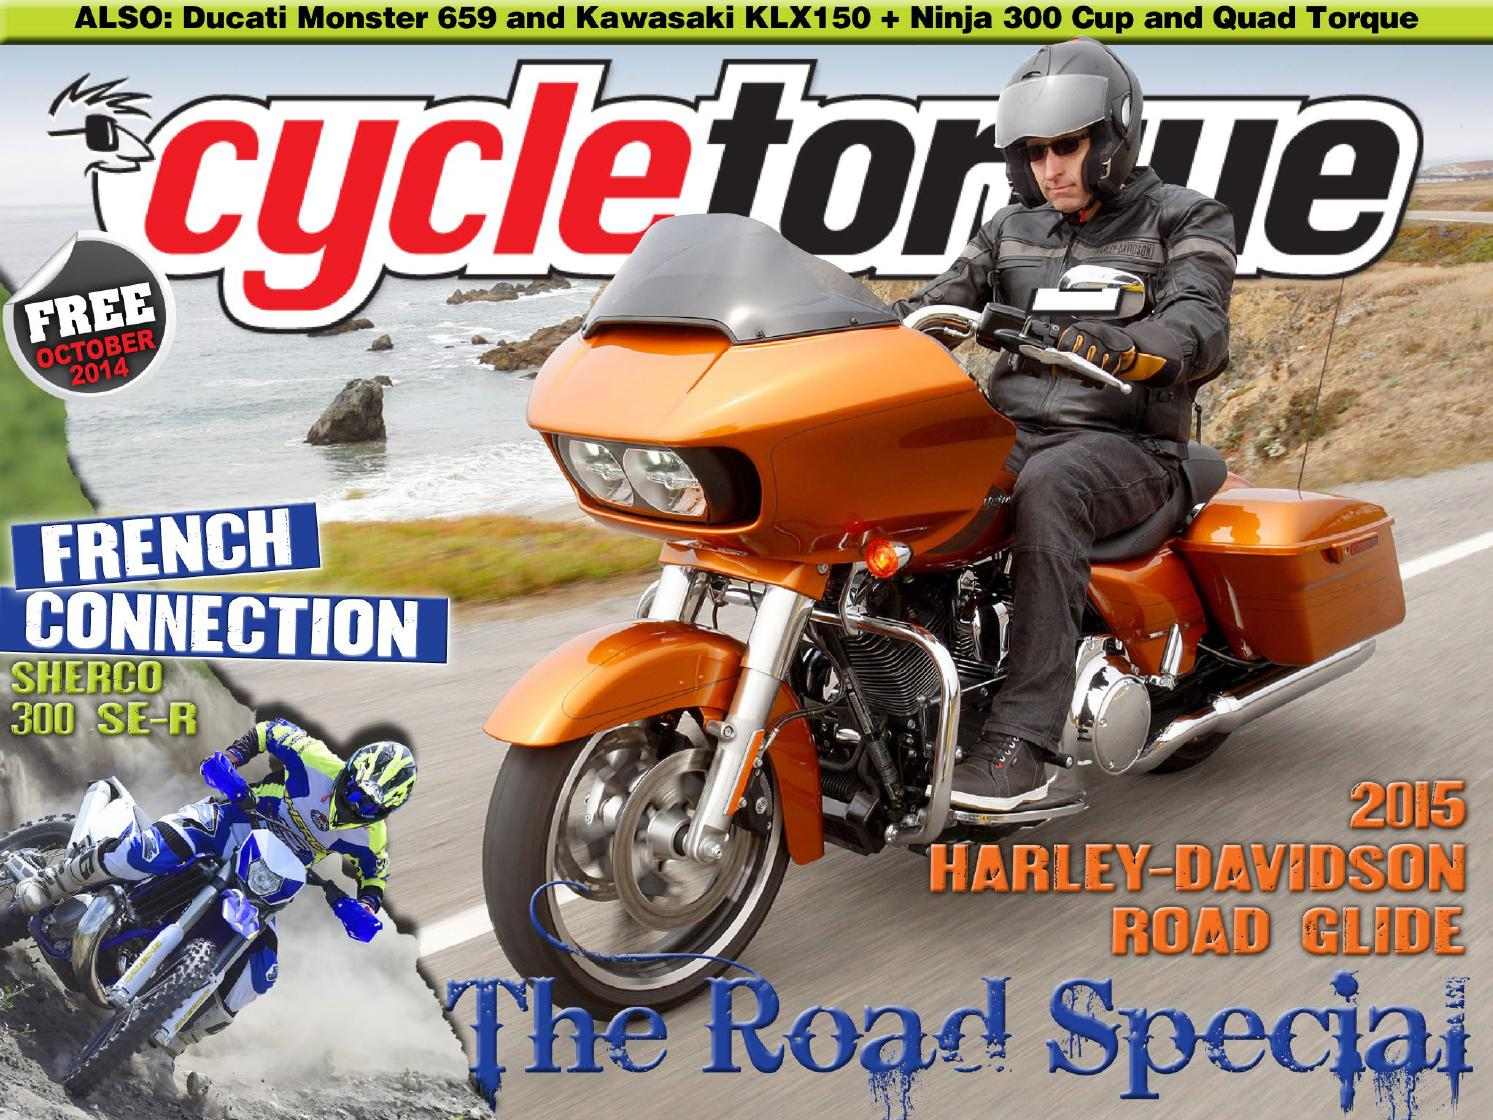 Cycle Torque October 2014 by Cycle Torque - issuu